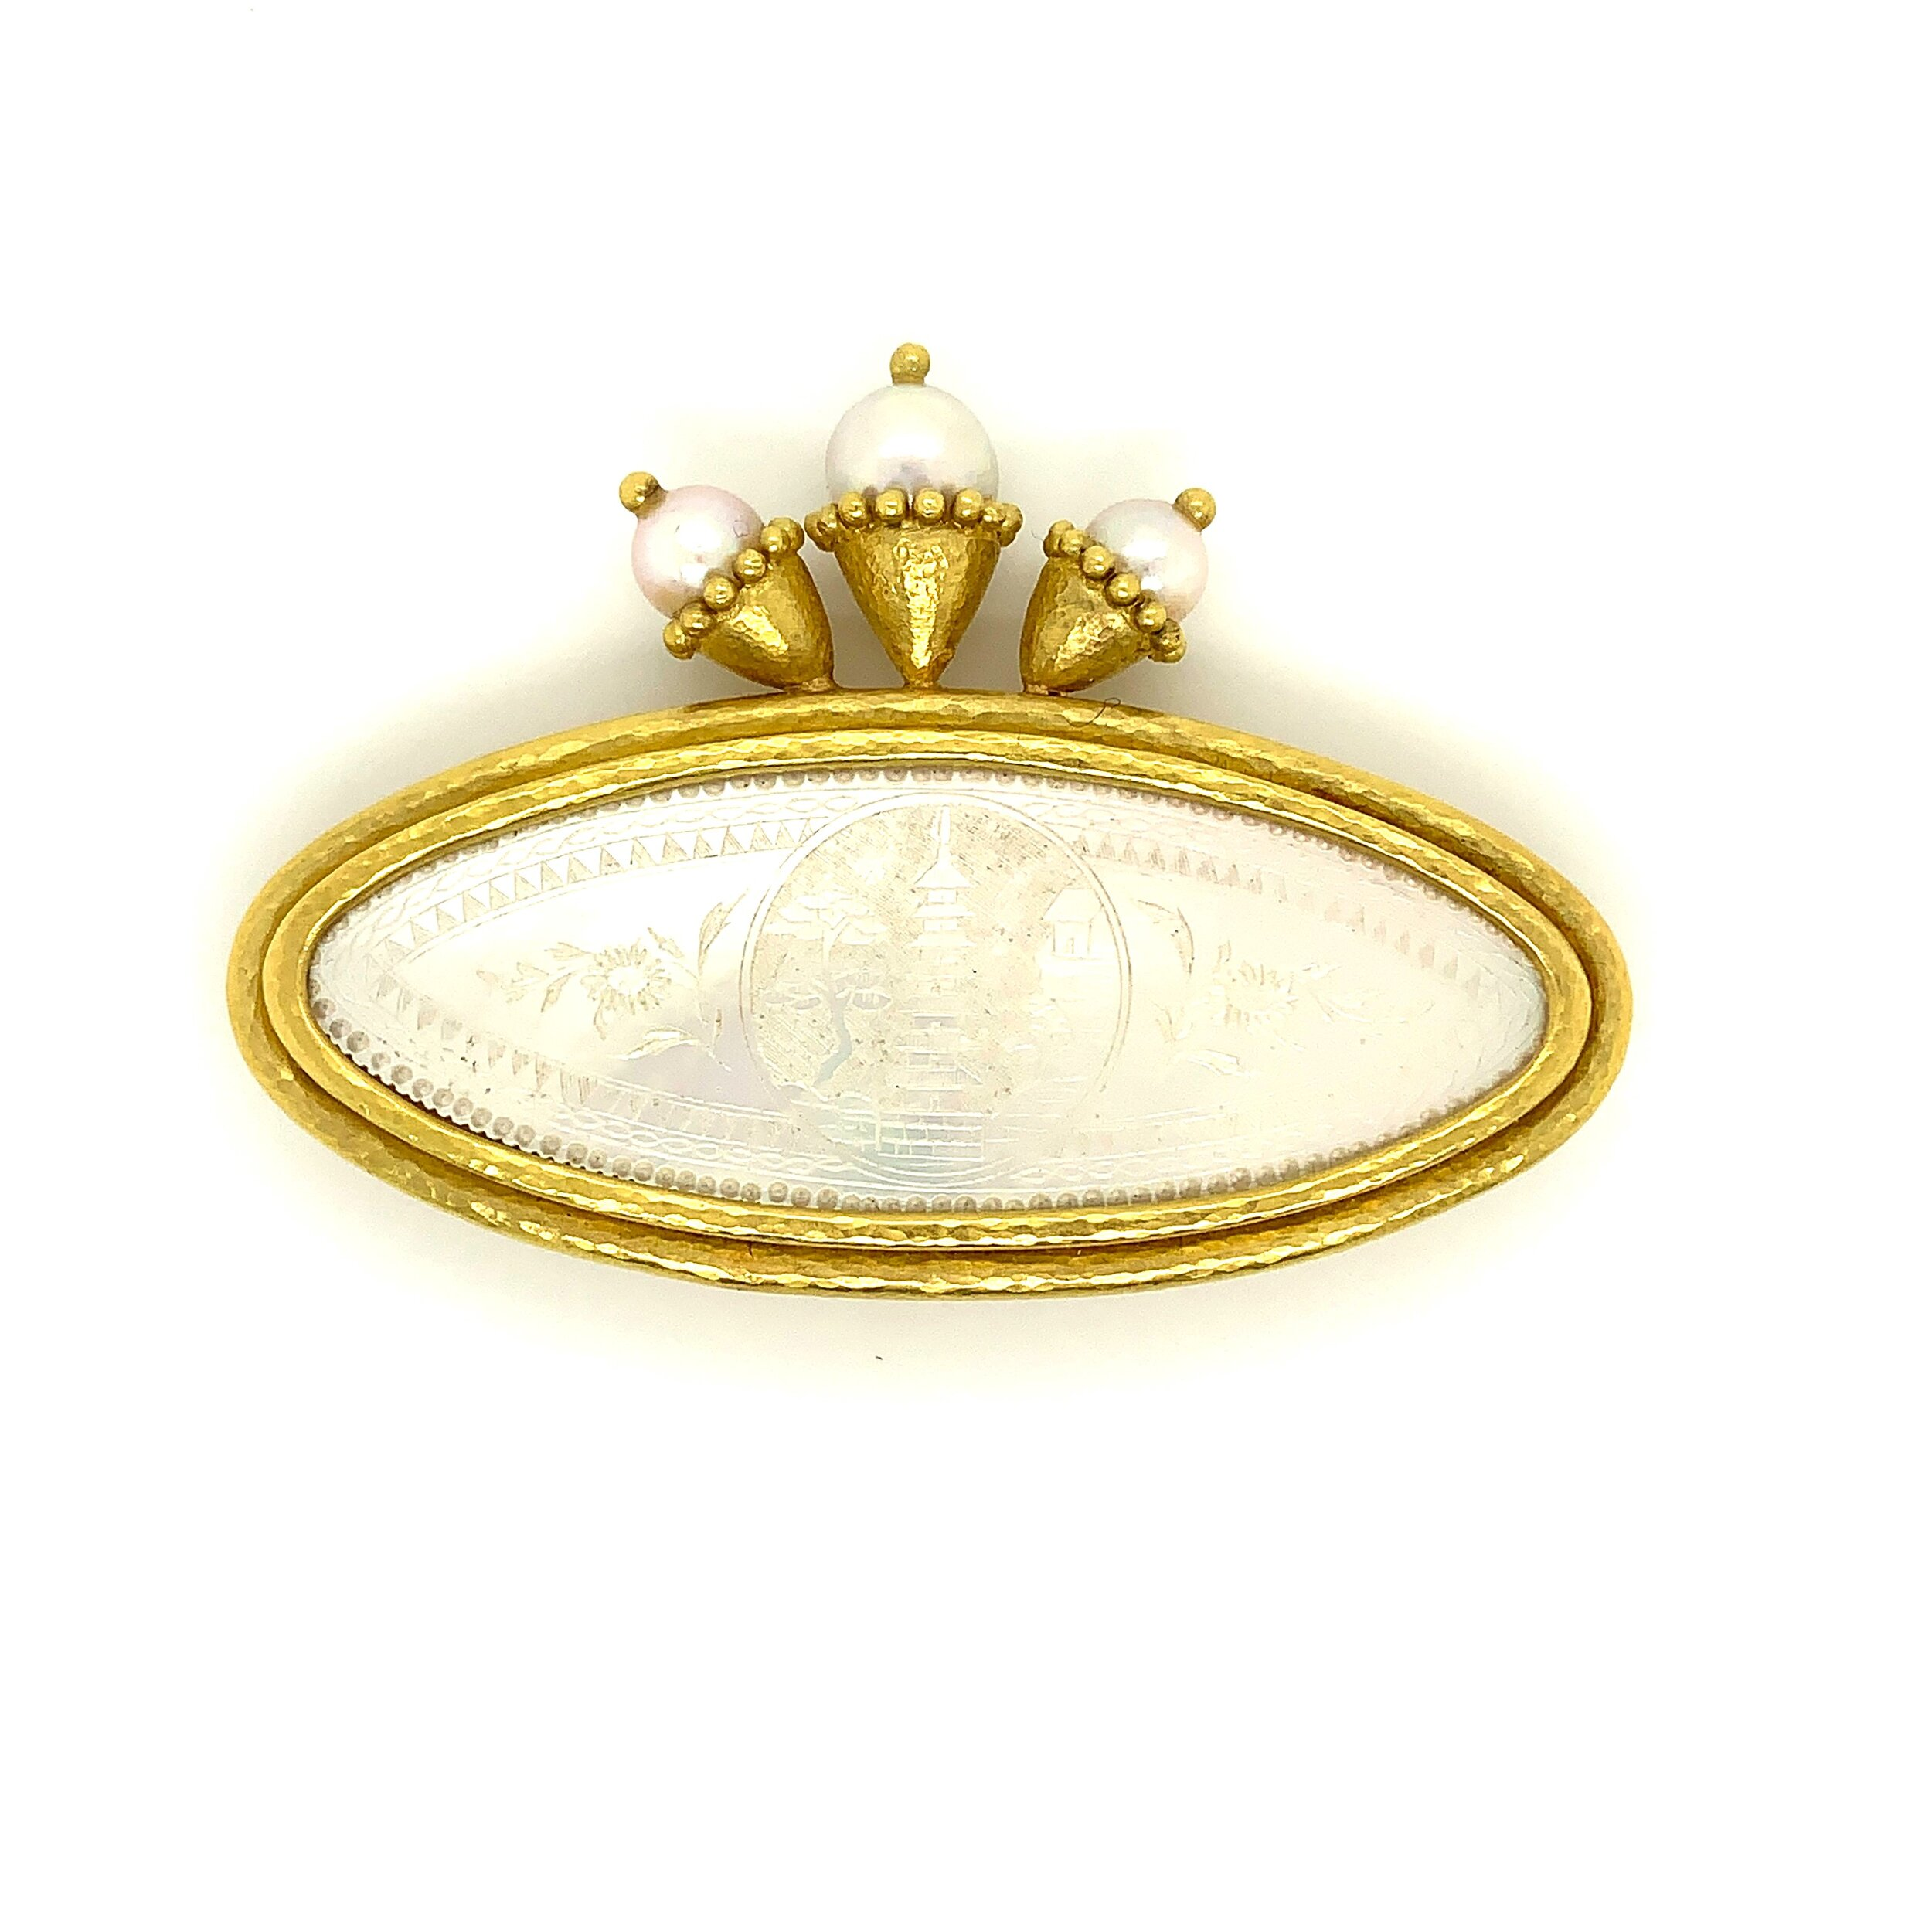 Etched Mother-of-Pearl Chinese Gambling Brooch with Akoya Pearl Top in 18 Karat Gold, Elizabeth Locke